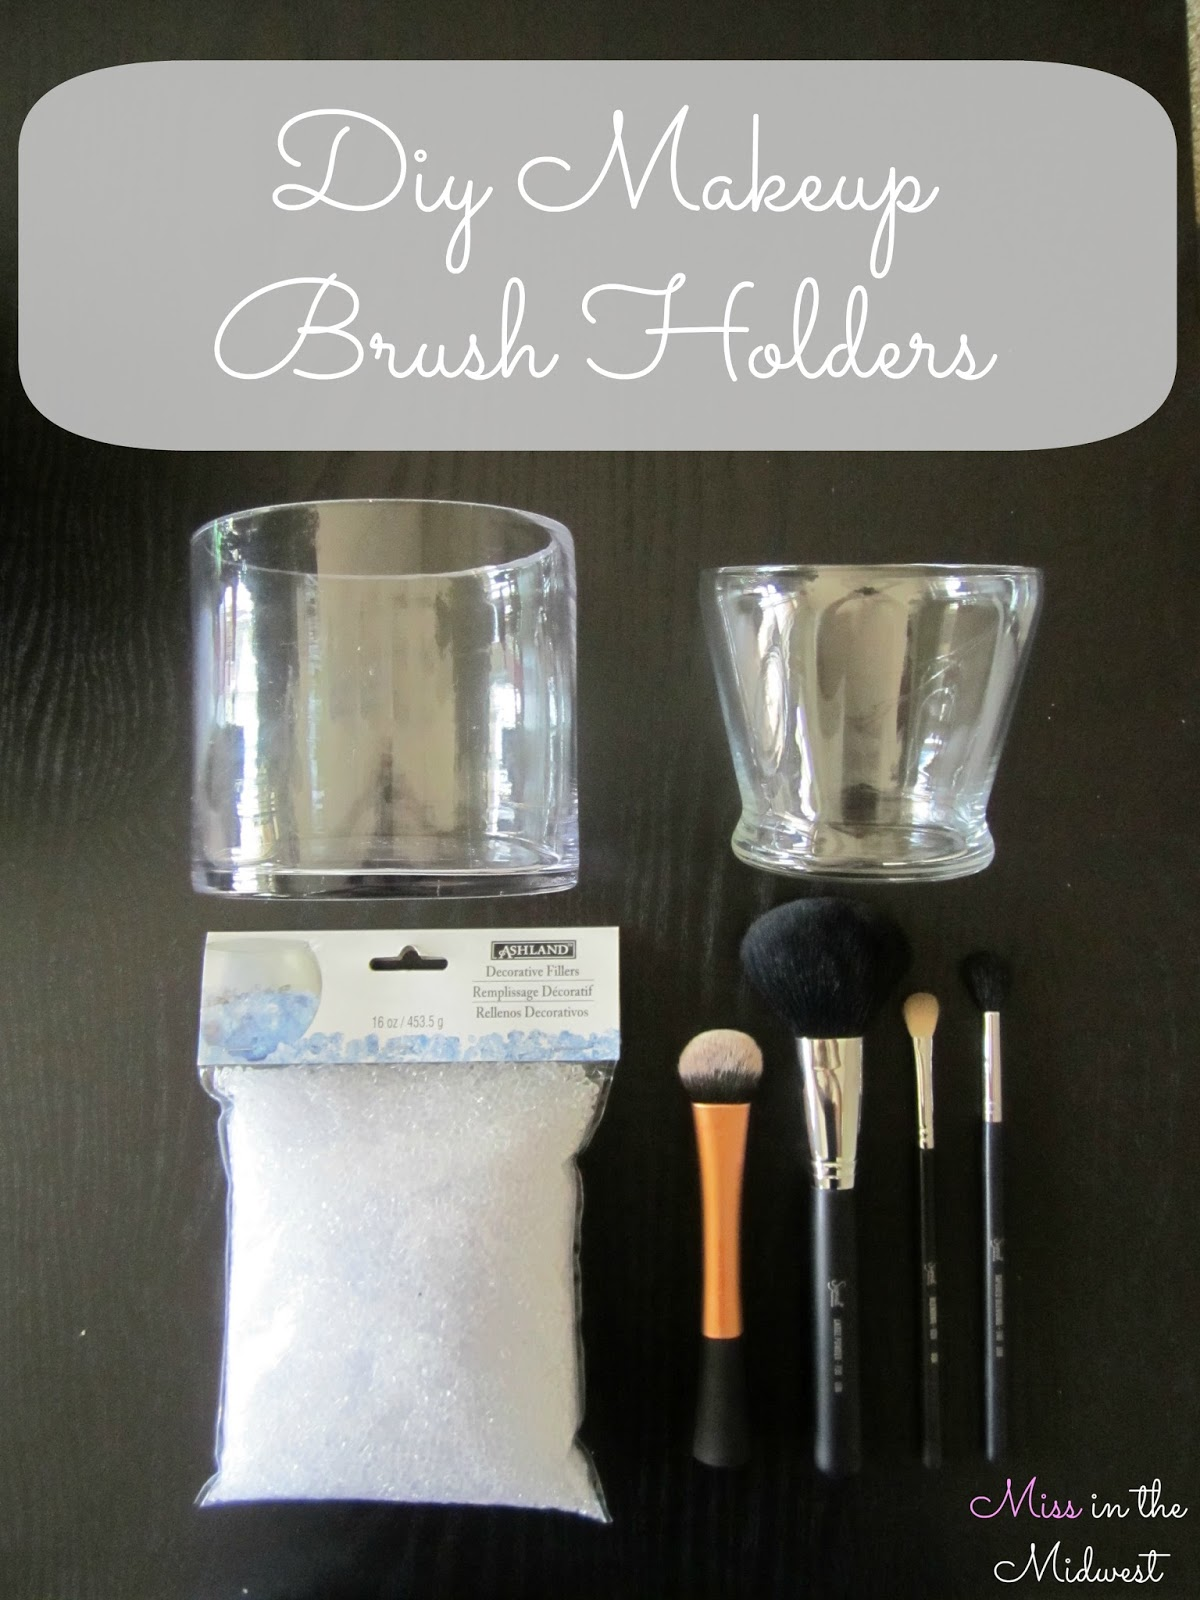 Miss in the Midwest: DIY Makeup Brush Holders